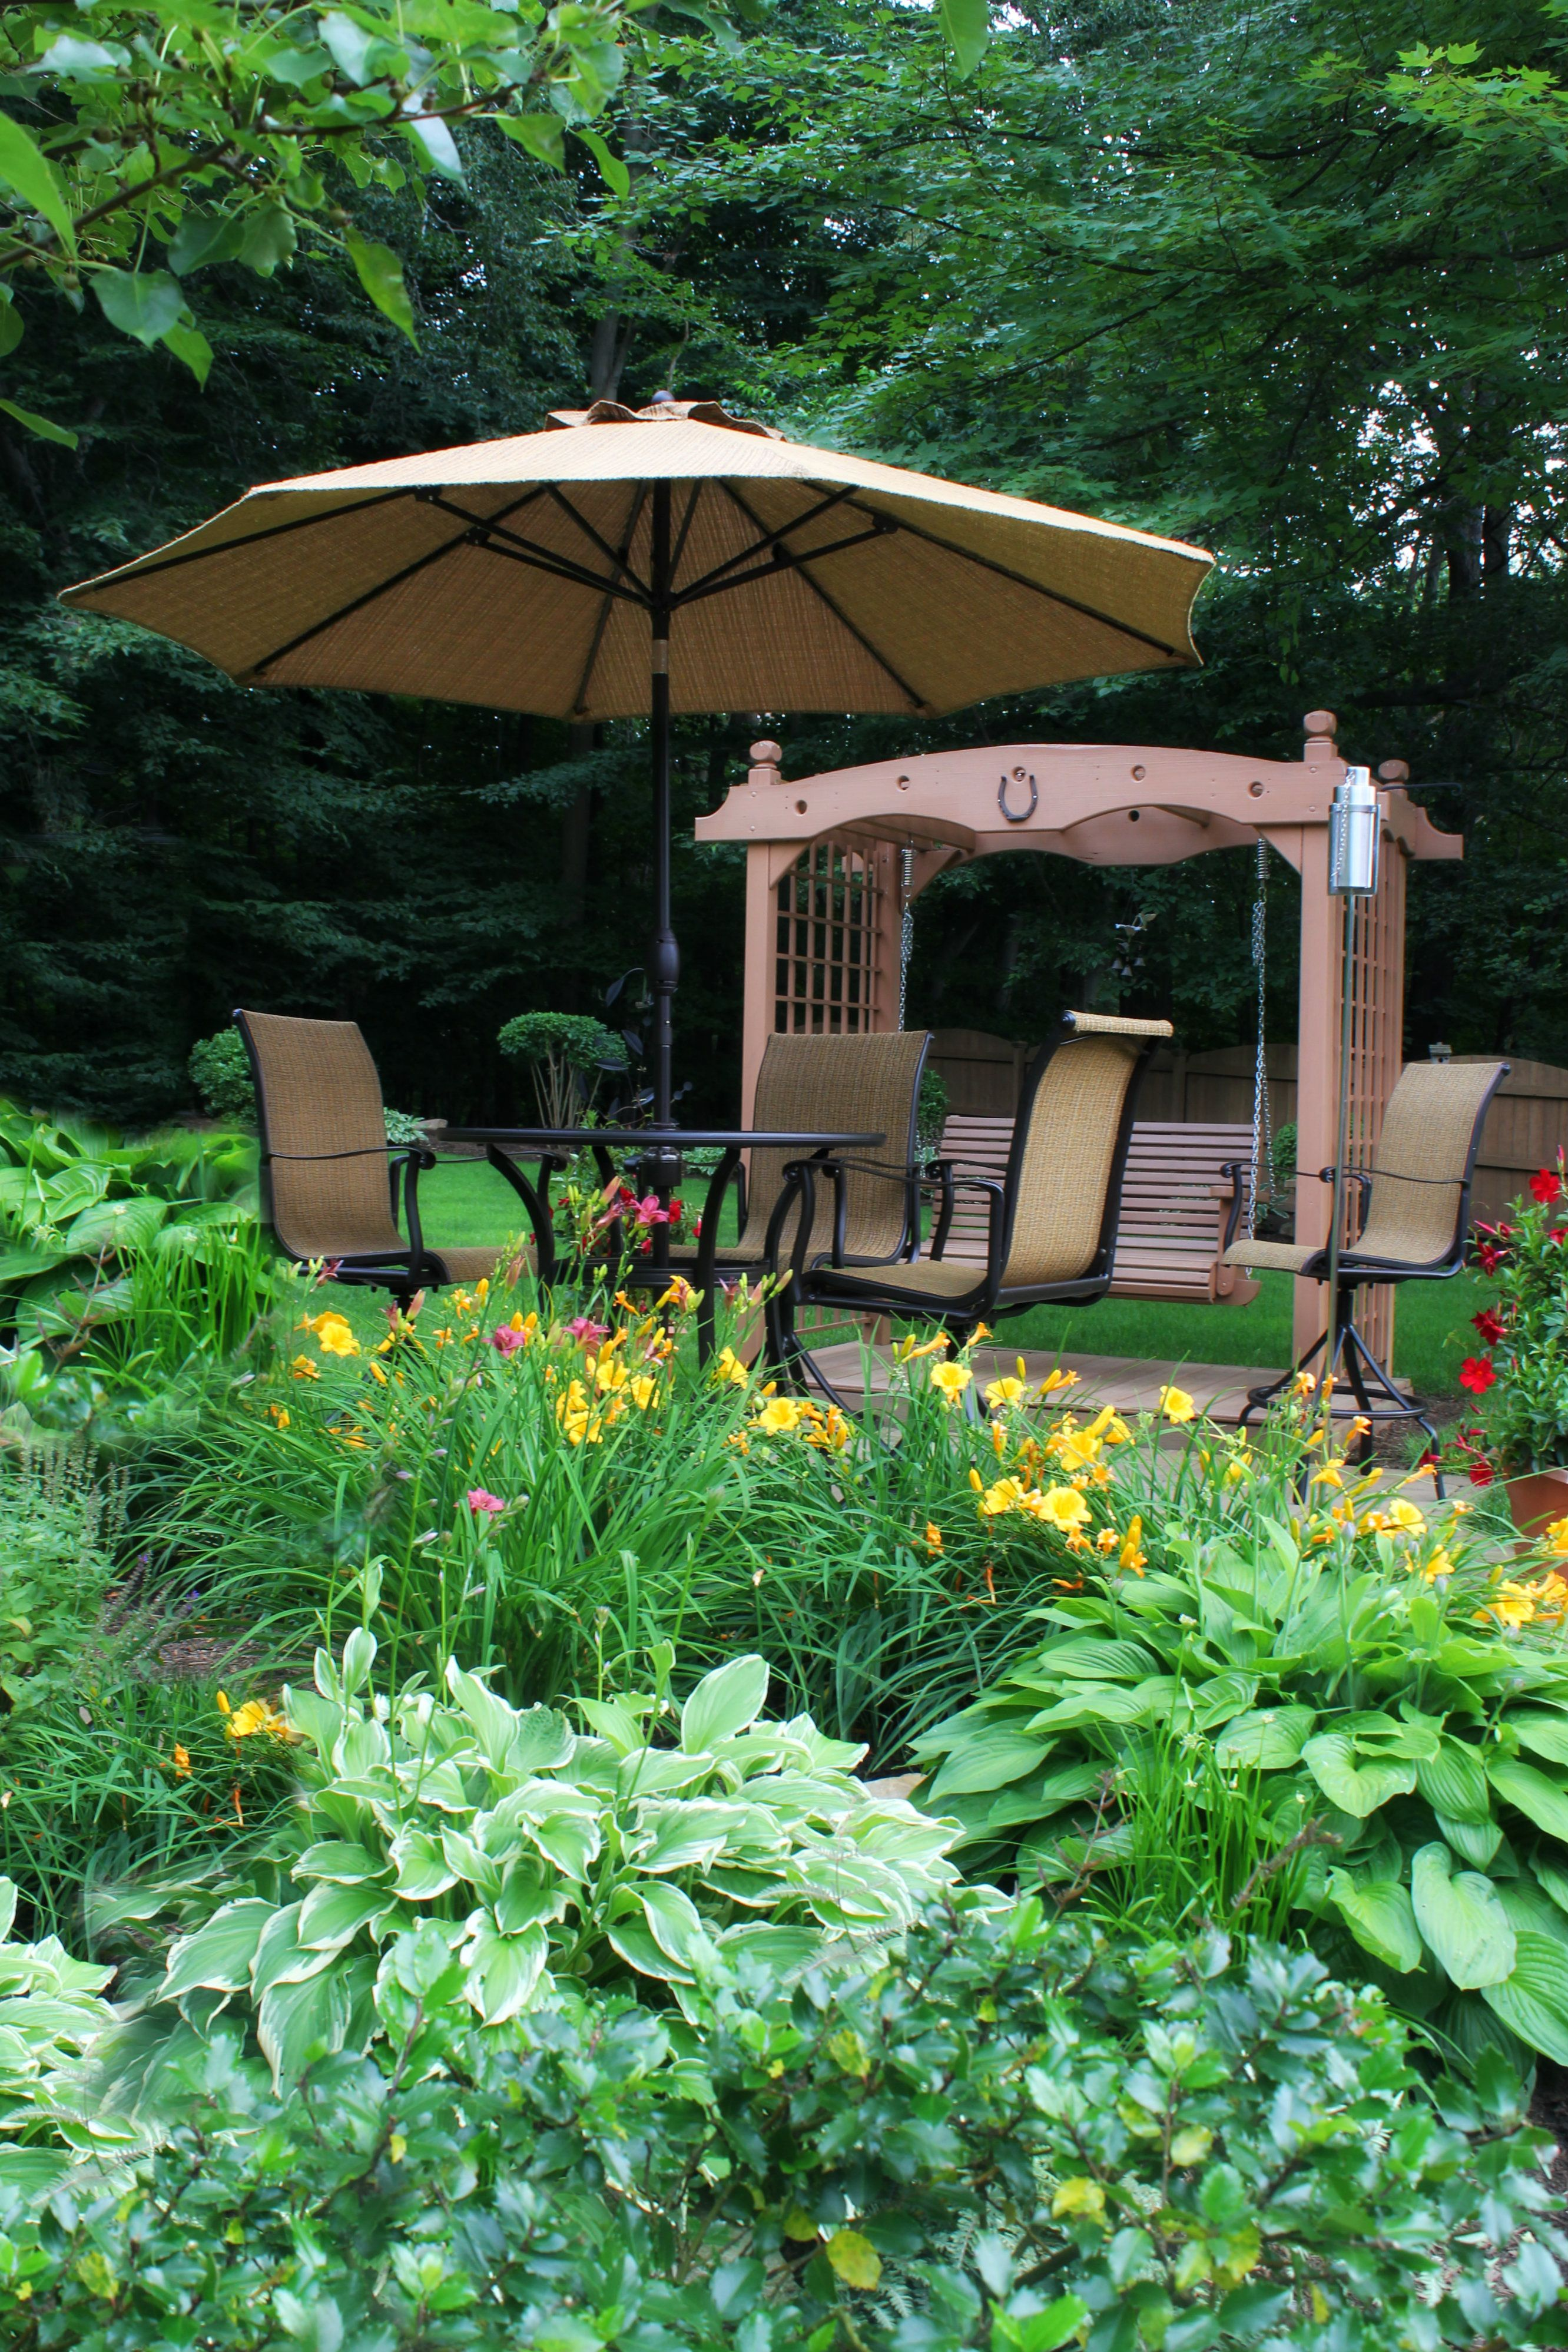 Adding perenials to enhance the setting of a cafe umbrella table and